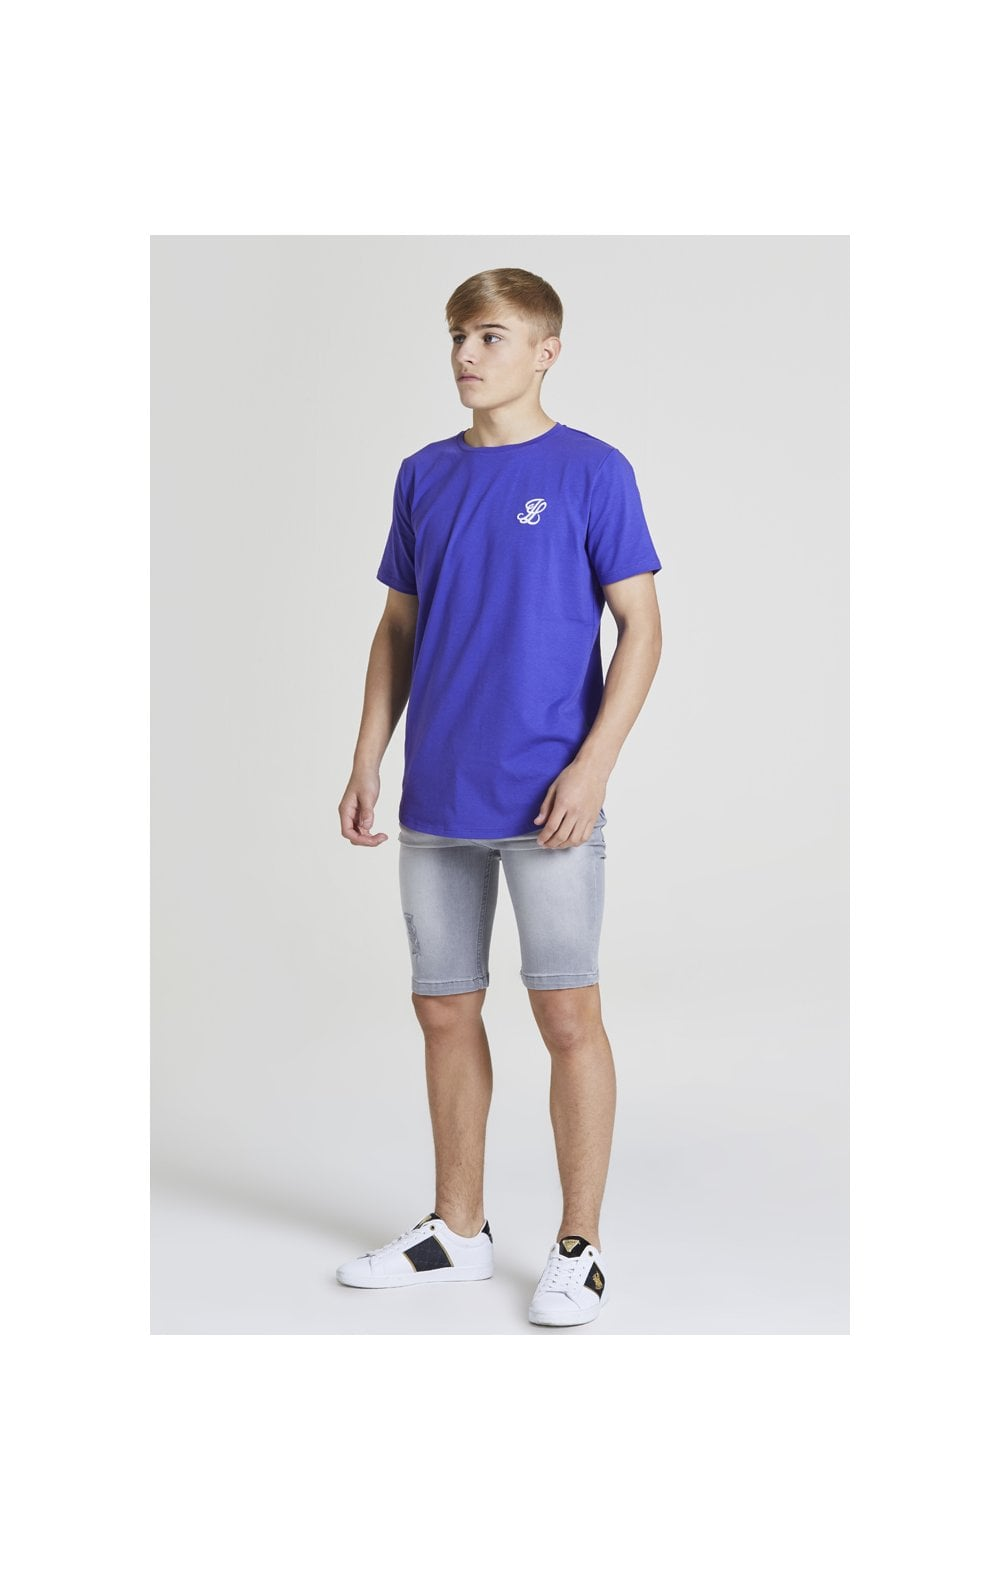 Load image into Gallery viewer, Illusive London Core Tee - Purple (2)